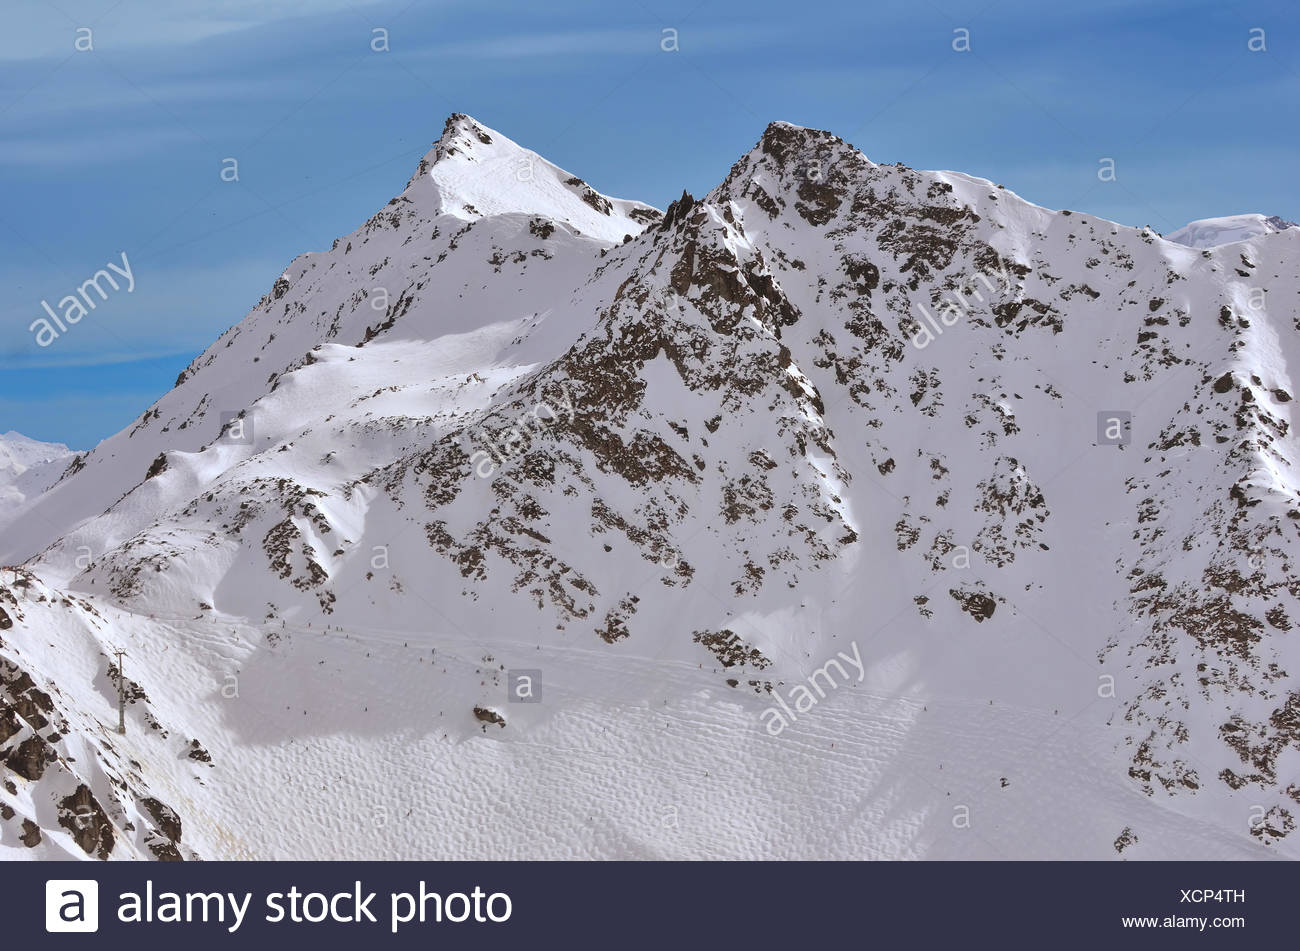 Off piste skiing in Verbier 4 Valleys, Switzerland. In the foreground, Tortin, with the Mt Gele behind. Viewed from a helicopter - Stock Image